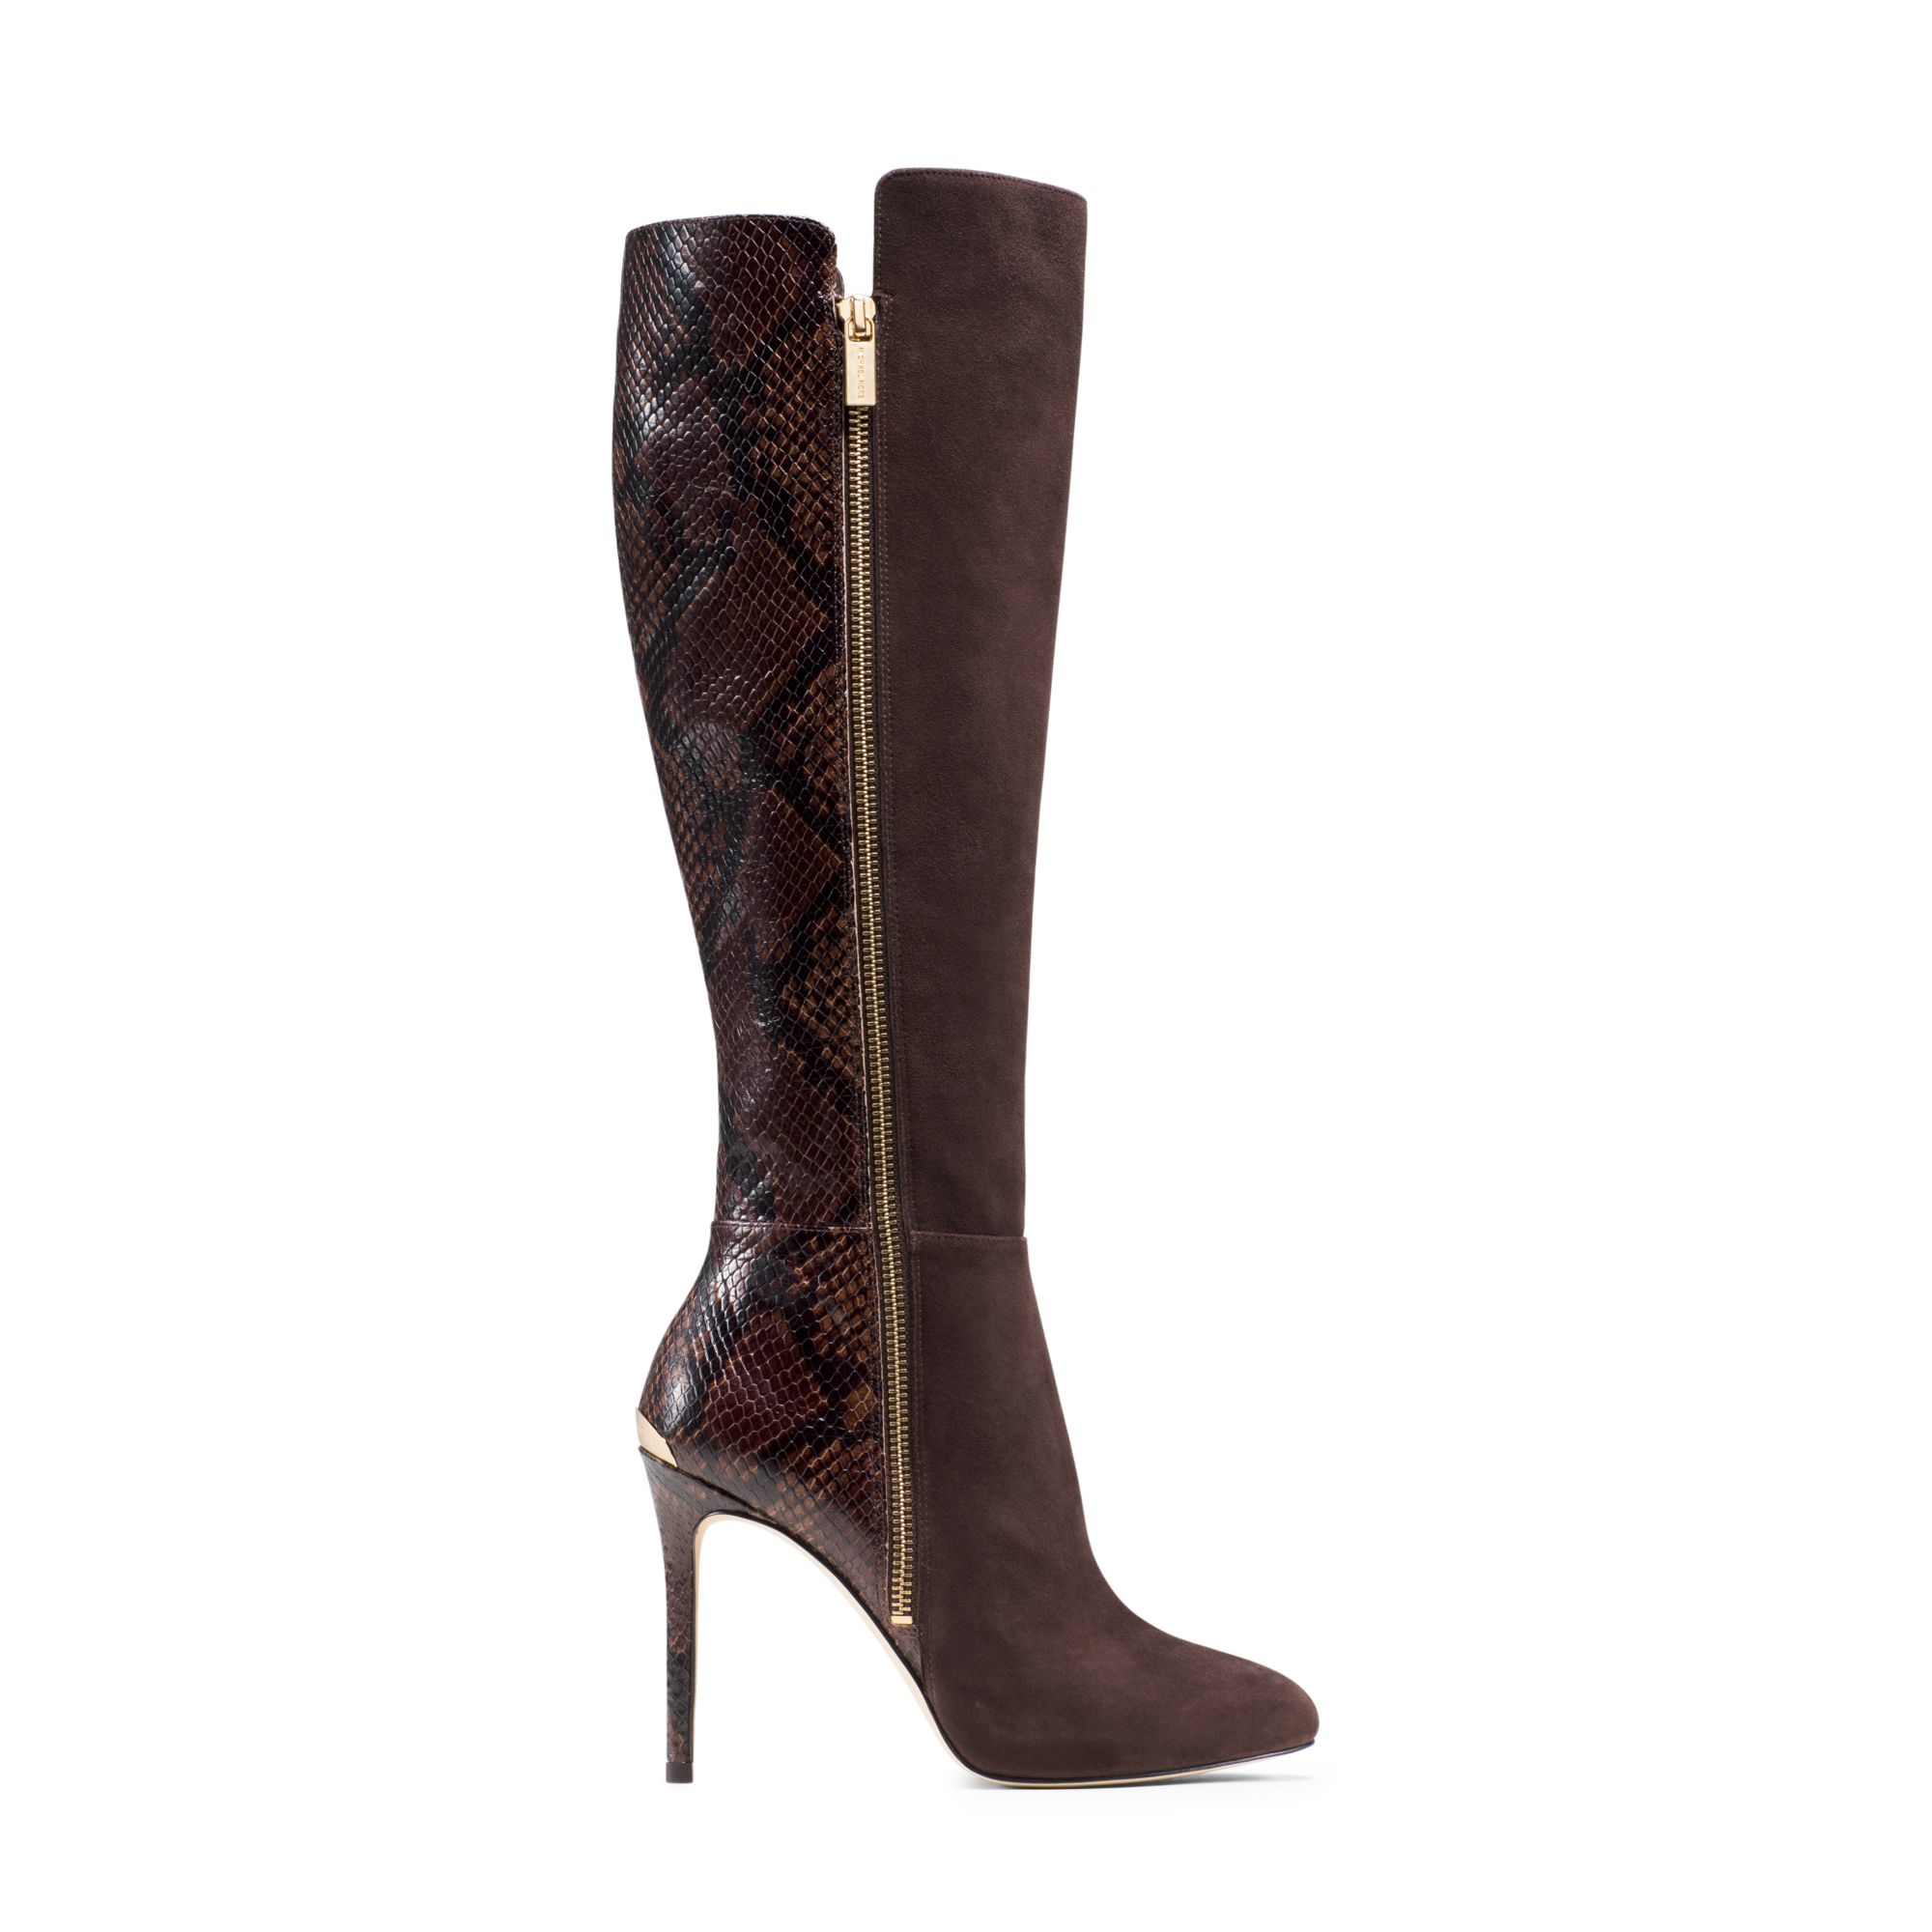 michael kors clara suede and embossed leather boot in